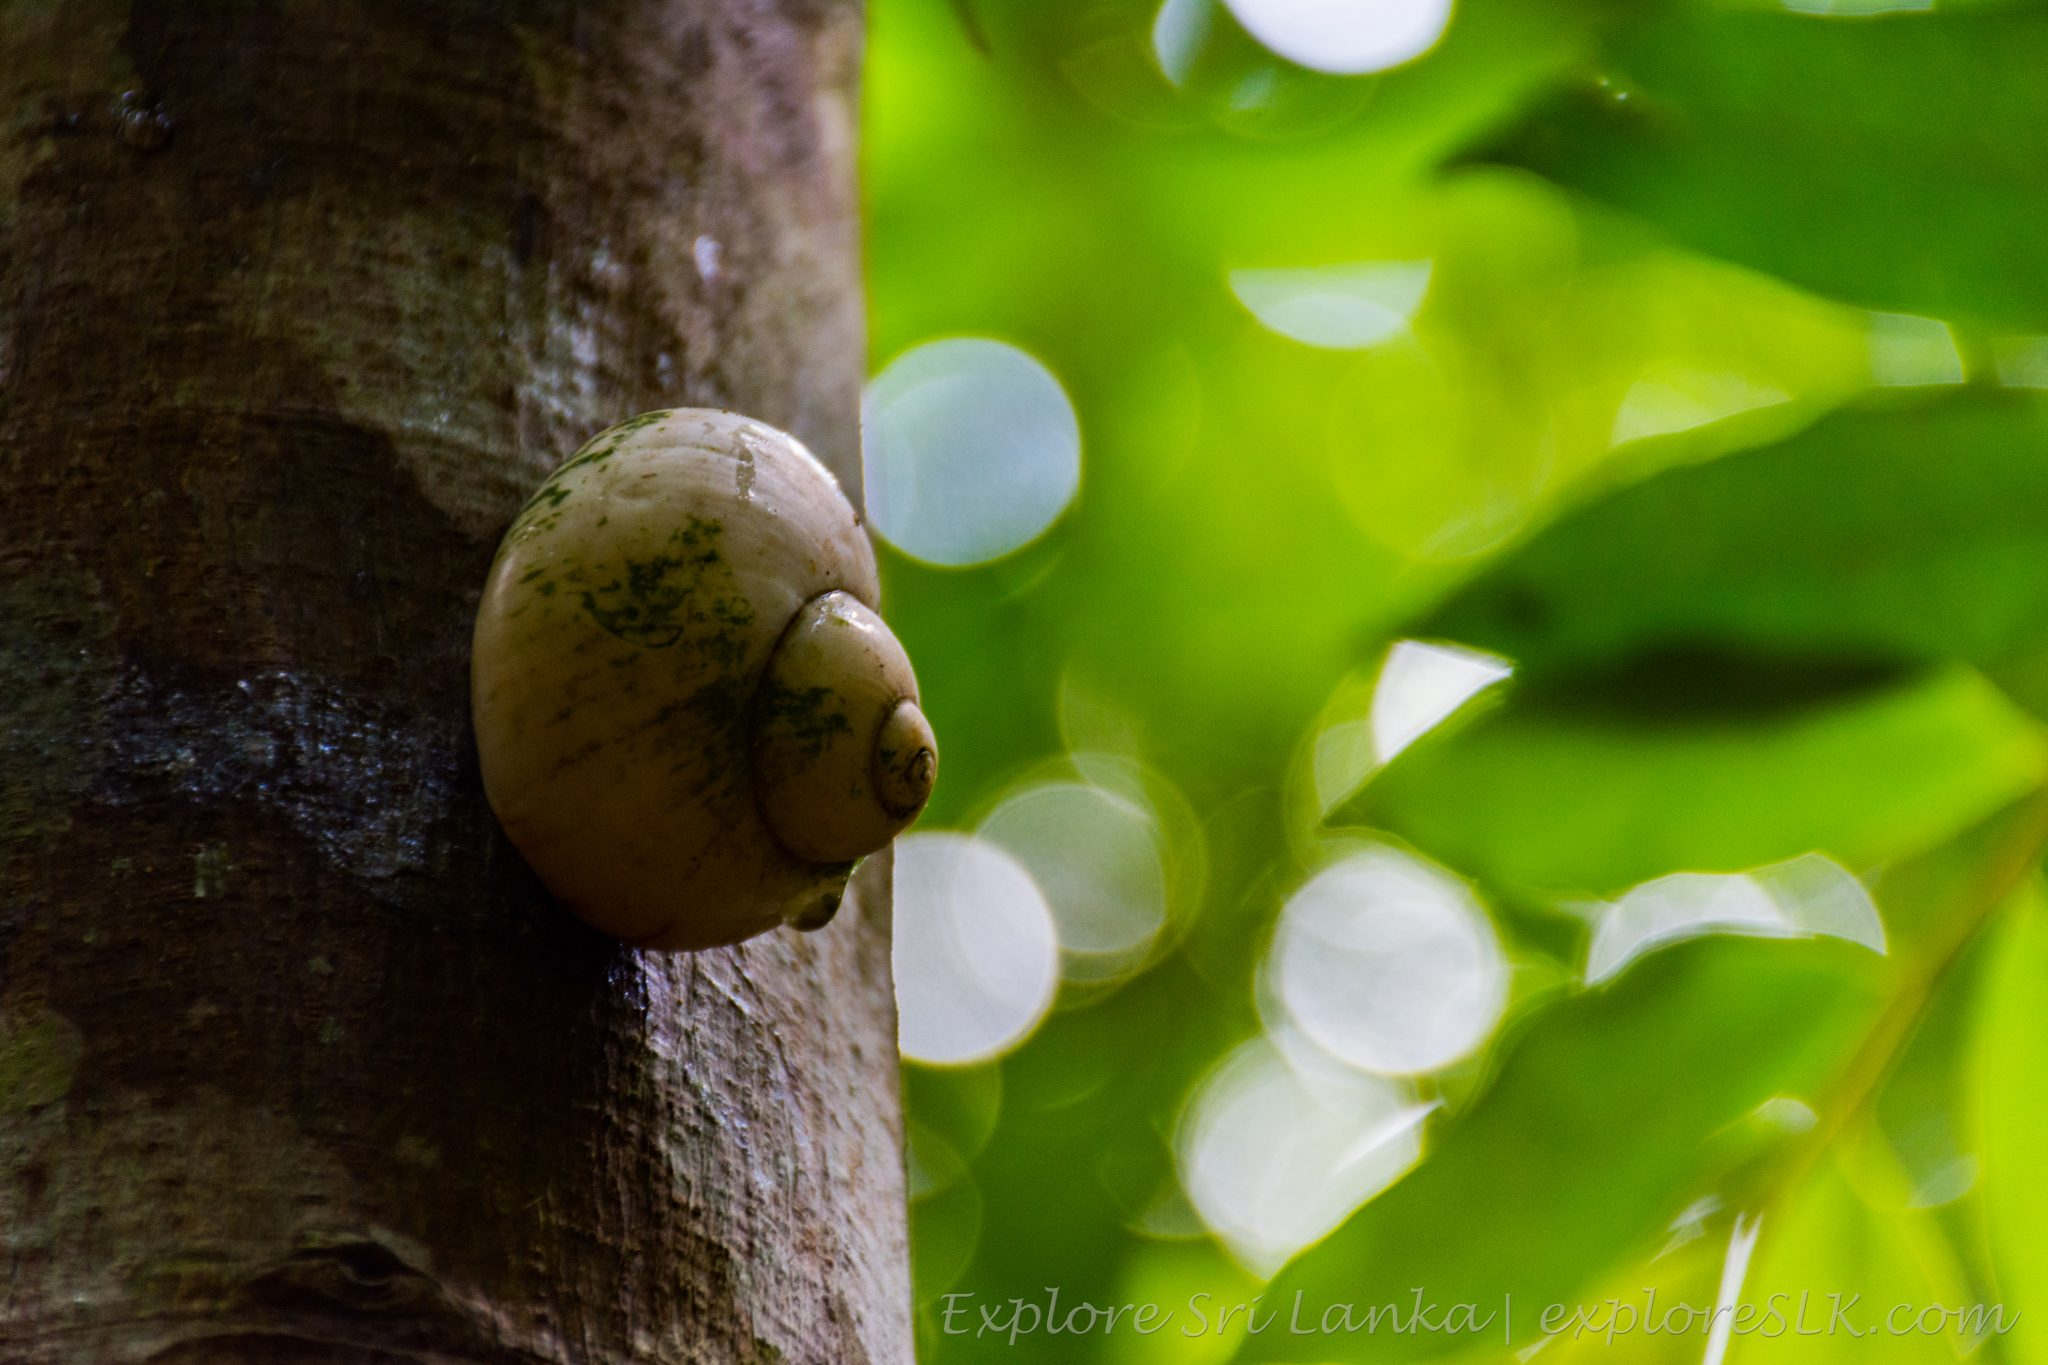 snail on tree